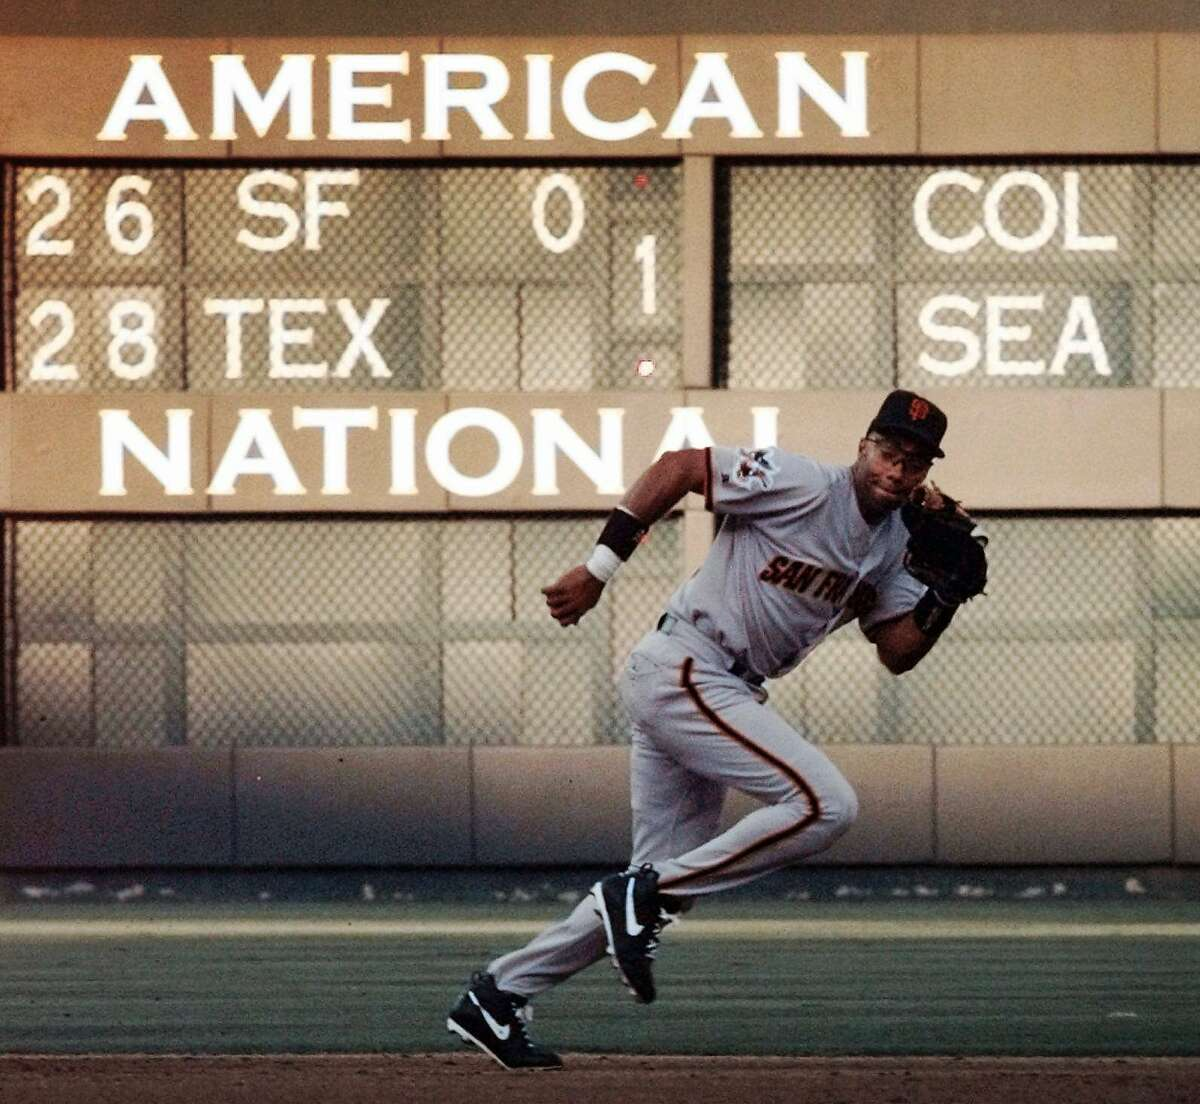 San Francisco Giants shortstop Jose Vizcaino chases down a grounder by Texas Rangers' Rusty Greer during the first inning of the teams' interleague game in Arlington, Texas, Thursday, June 12, 1997. (AP Photo/Eric Gay)